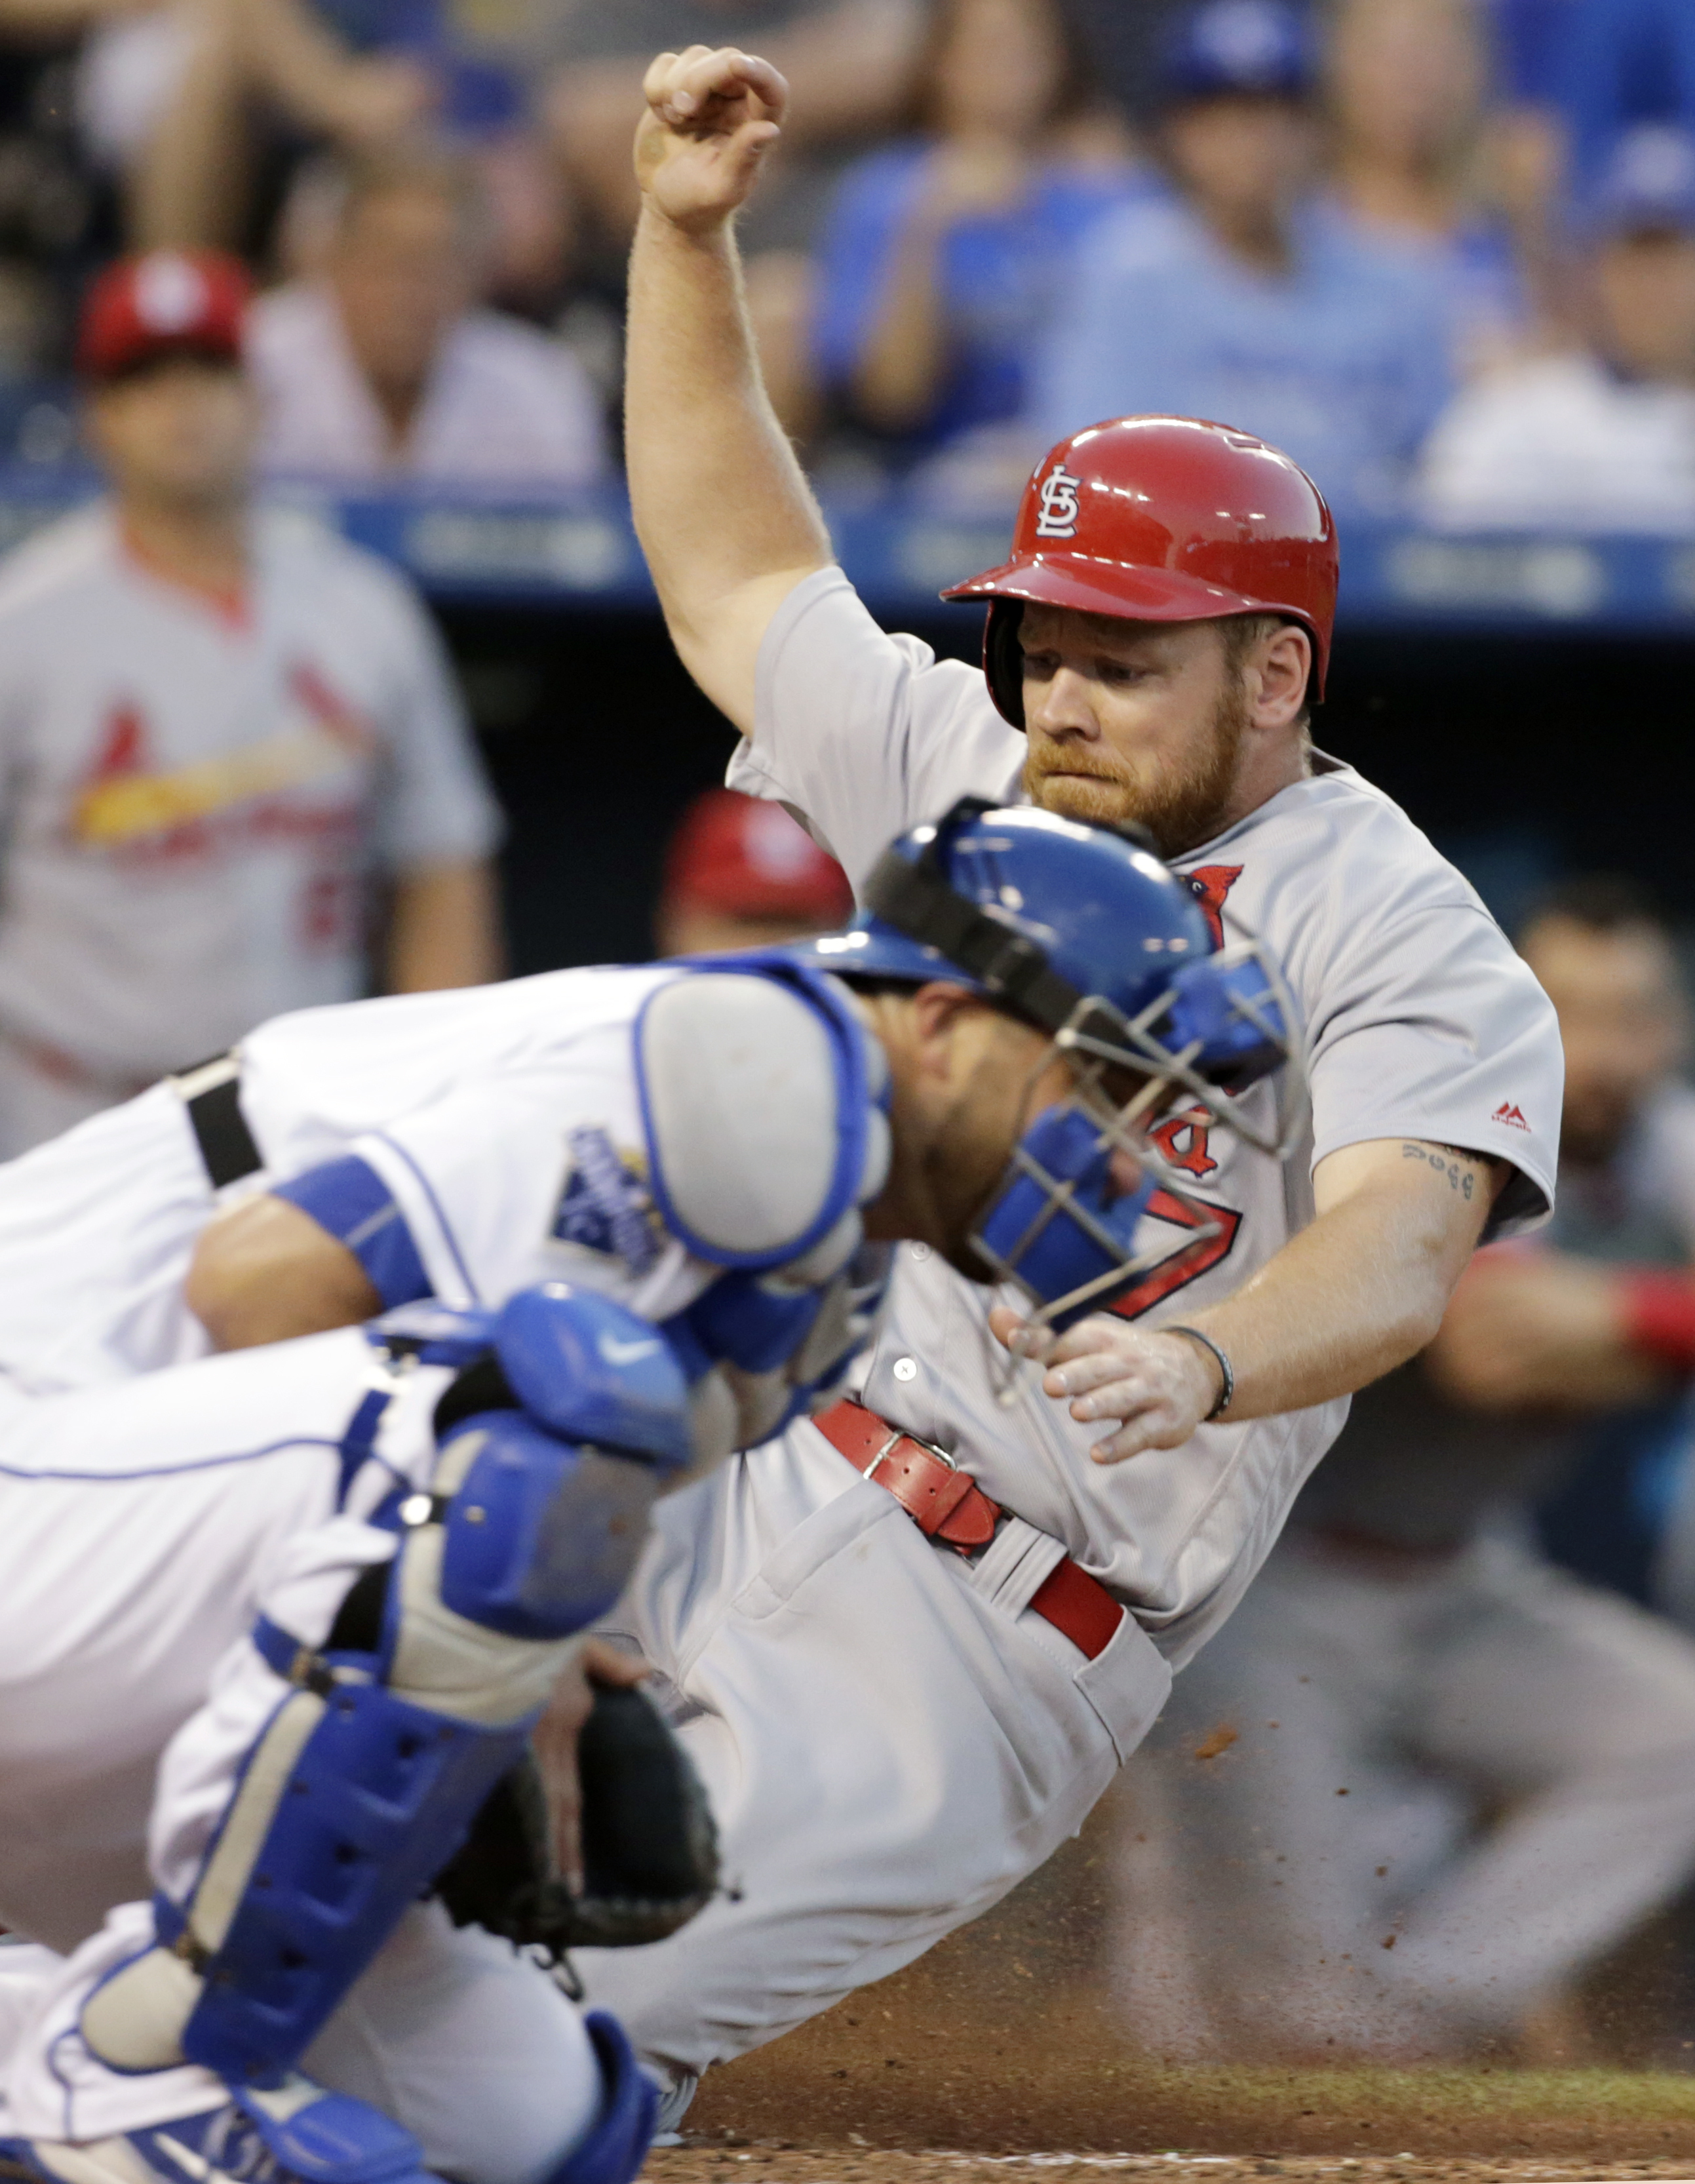 St. Louis Cardinals Brandon Moss (37) is safe at home plate as Kansas City Royals catcher Drew Butera (9) gets a late throw in the fifth inning of a baseball game in Kansas City, Mo., Tuesday, June 28, 2016. (AP Photo/Colin E. Braley)